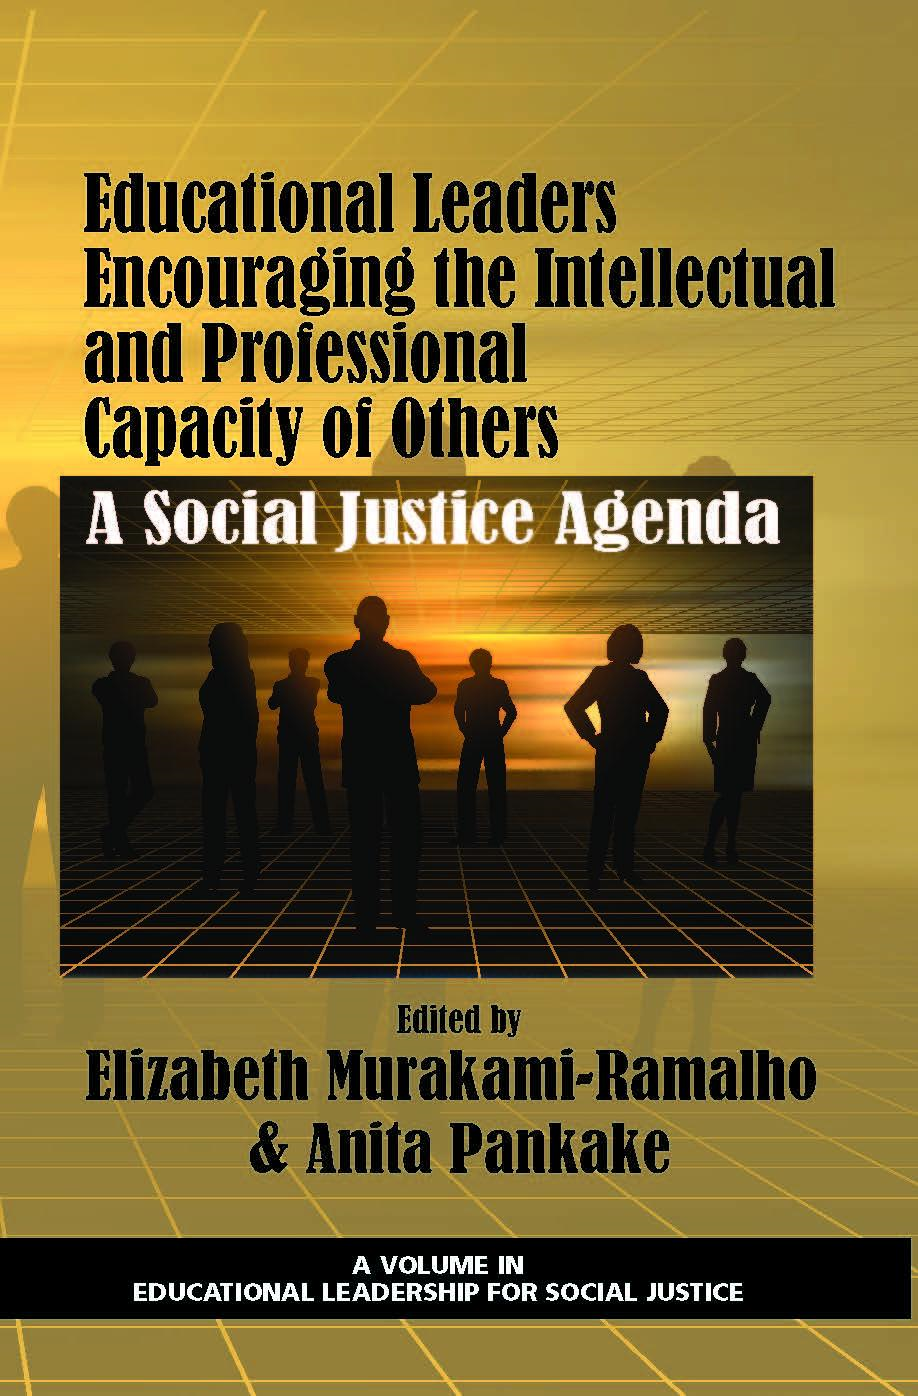 Educational Leaders Encouraging the Intellectual and Professional Capacity of Others: A Social Justice Agenda